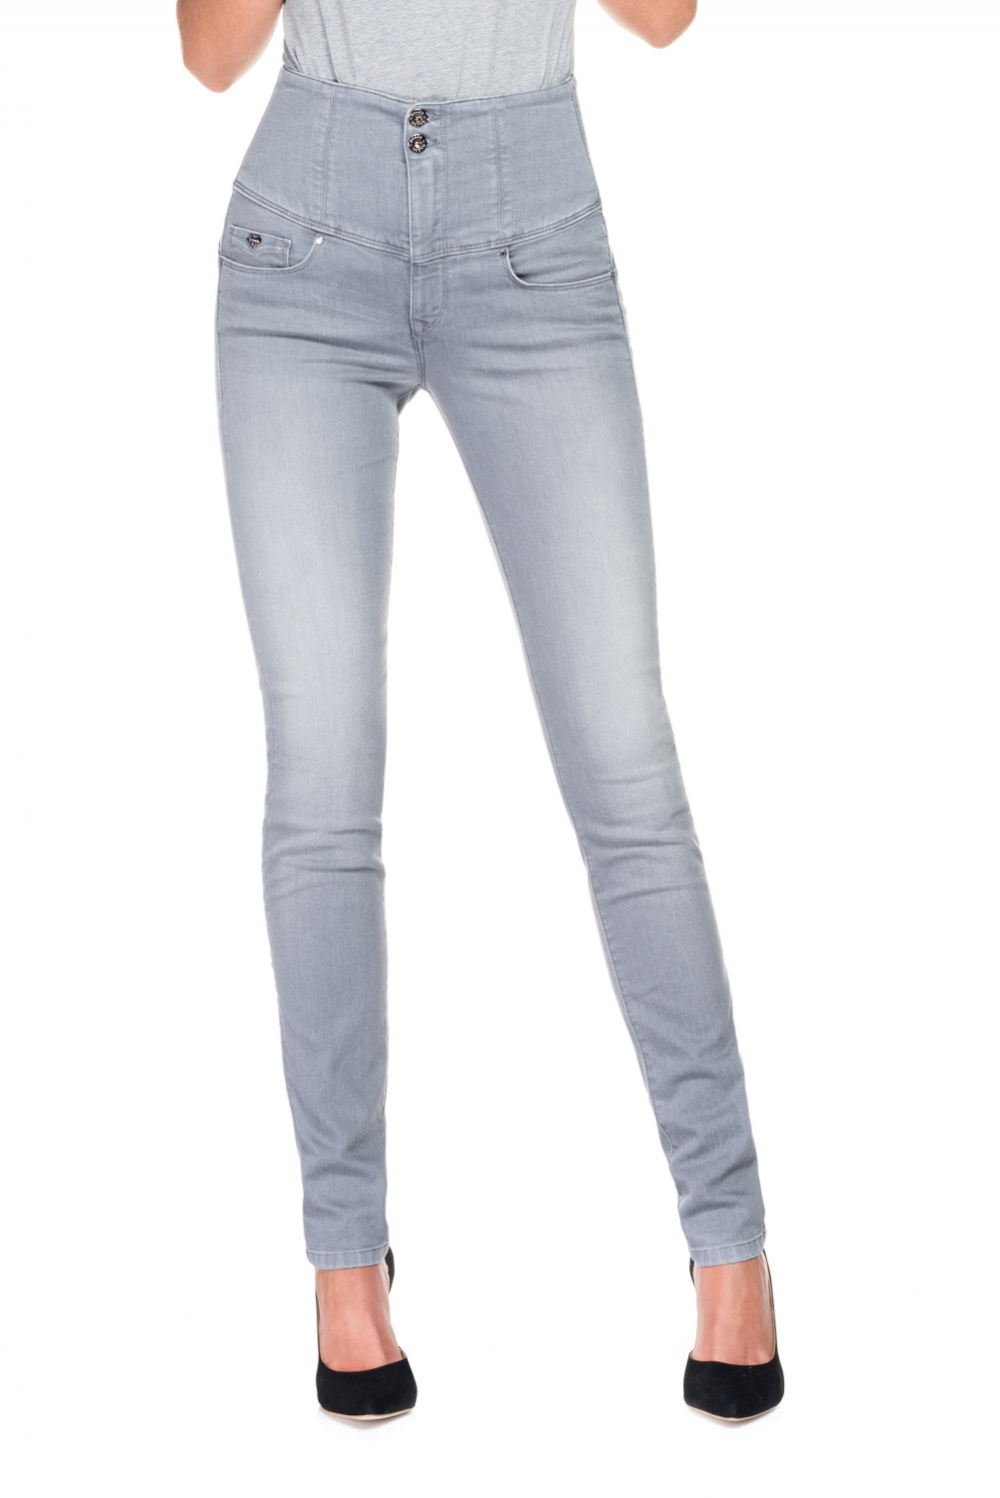 Slimming Diva jeans with Emana fiber and slim leg